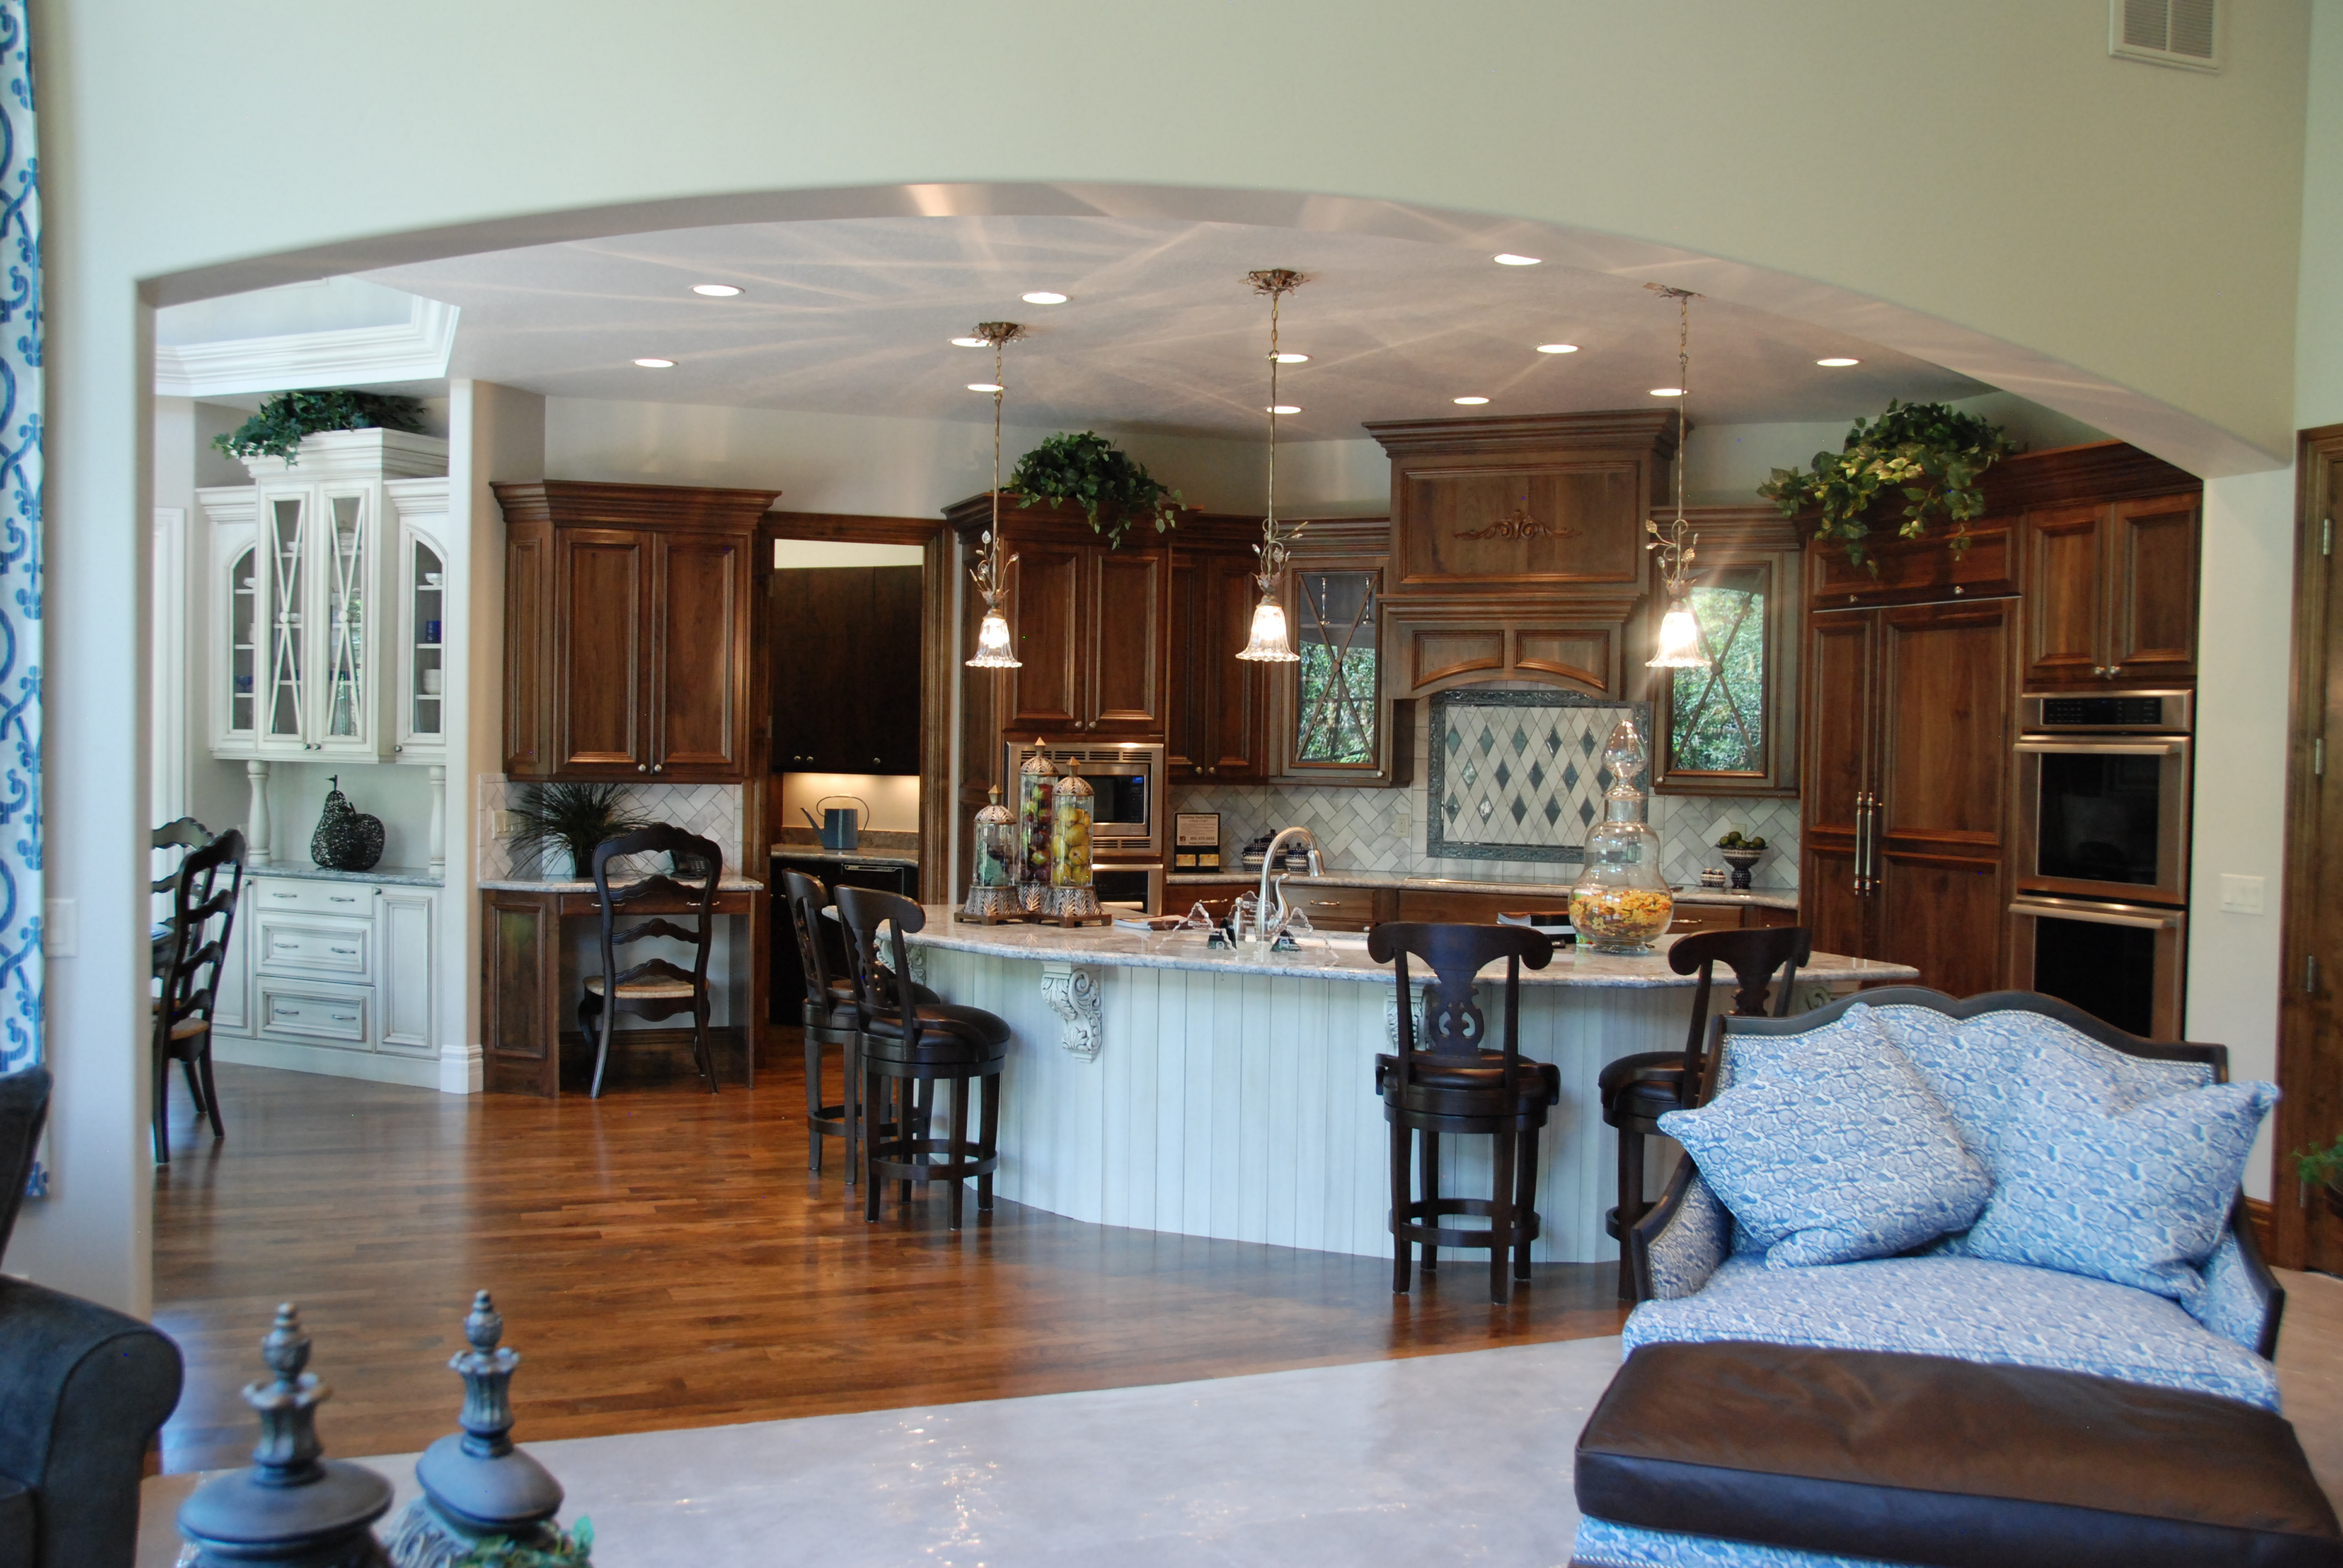 Salt Lake Parade of Homes 2011, Steven Dailey Wins Best in Category ...